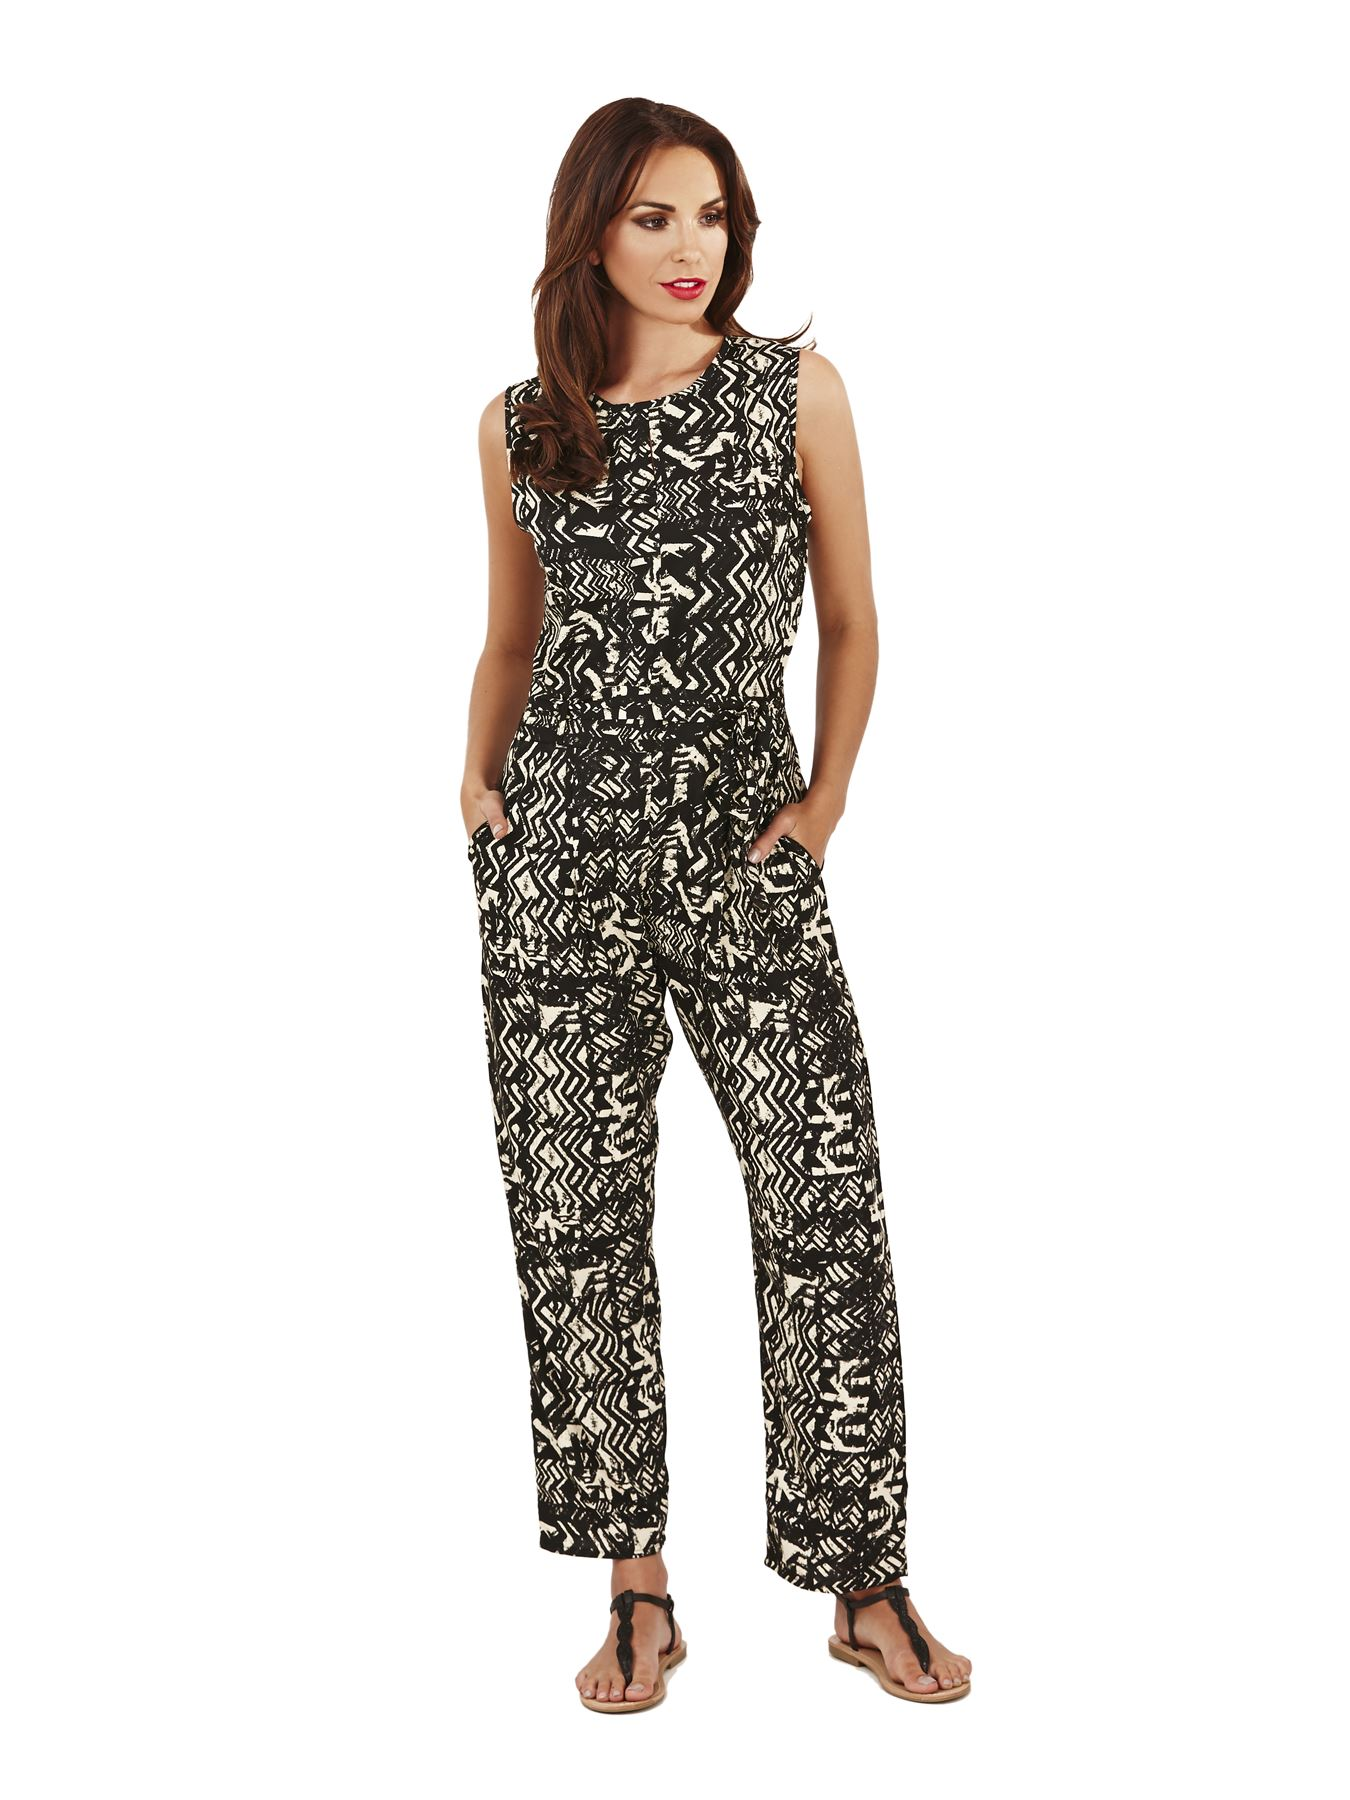 Women's Jumpsuits & Rompers; Jumpsuits for Women; Skip to page navigation. Filter (1) Unisex Adults Plain 1Onesie - Men | Women All in One Jumpsuit. $ 32 sold Trending price is based on prices over last 90 days. Ladies Fashion Solid Jumpsuit Denim Long Jumpsuit Deep V Neck Jean Jumpsuit ll. $ Trending at $ Women Black.